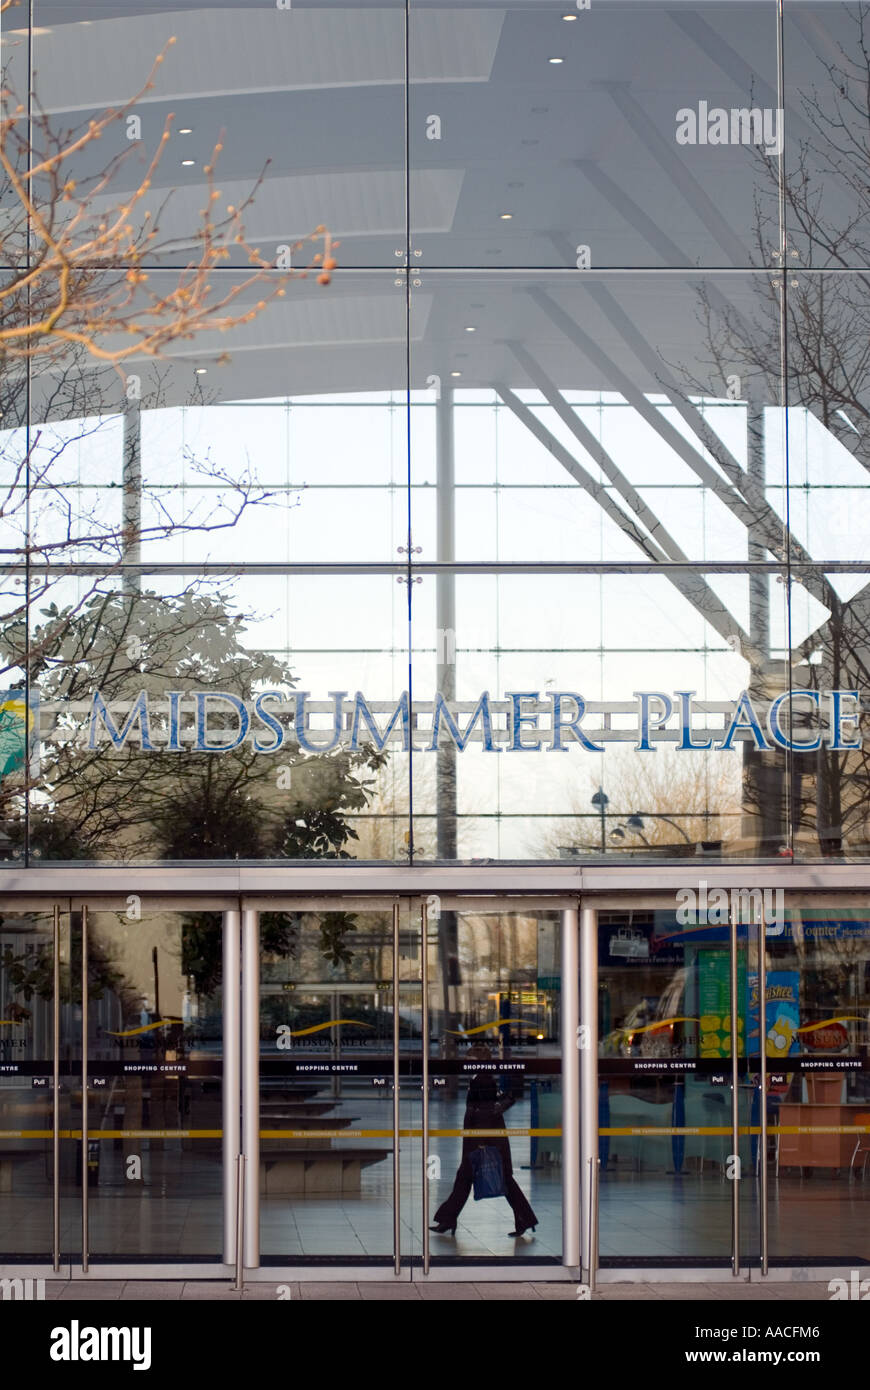 PICTURE CREDIT DOUG BLANE Midsummer Place in Central Milton Keynes shopping centre, the centre MK - Stock Image